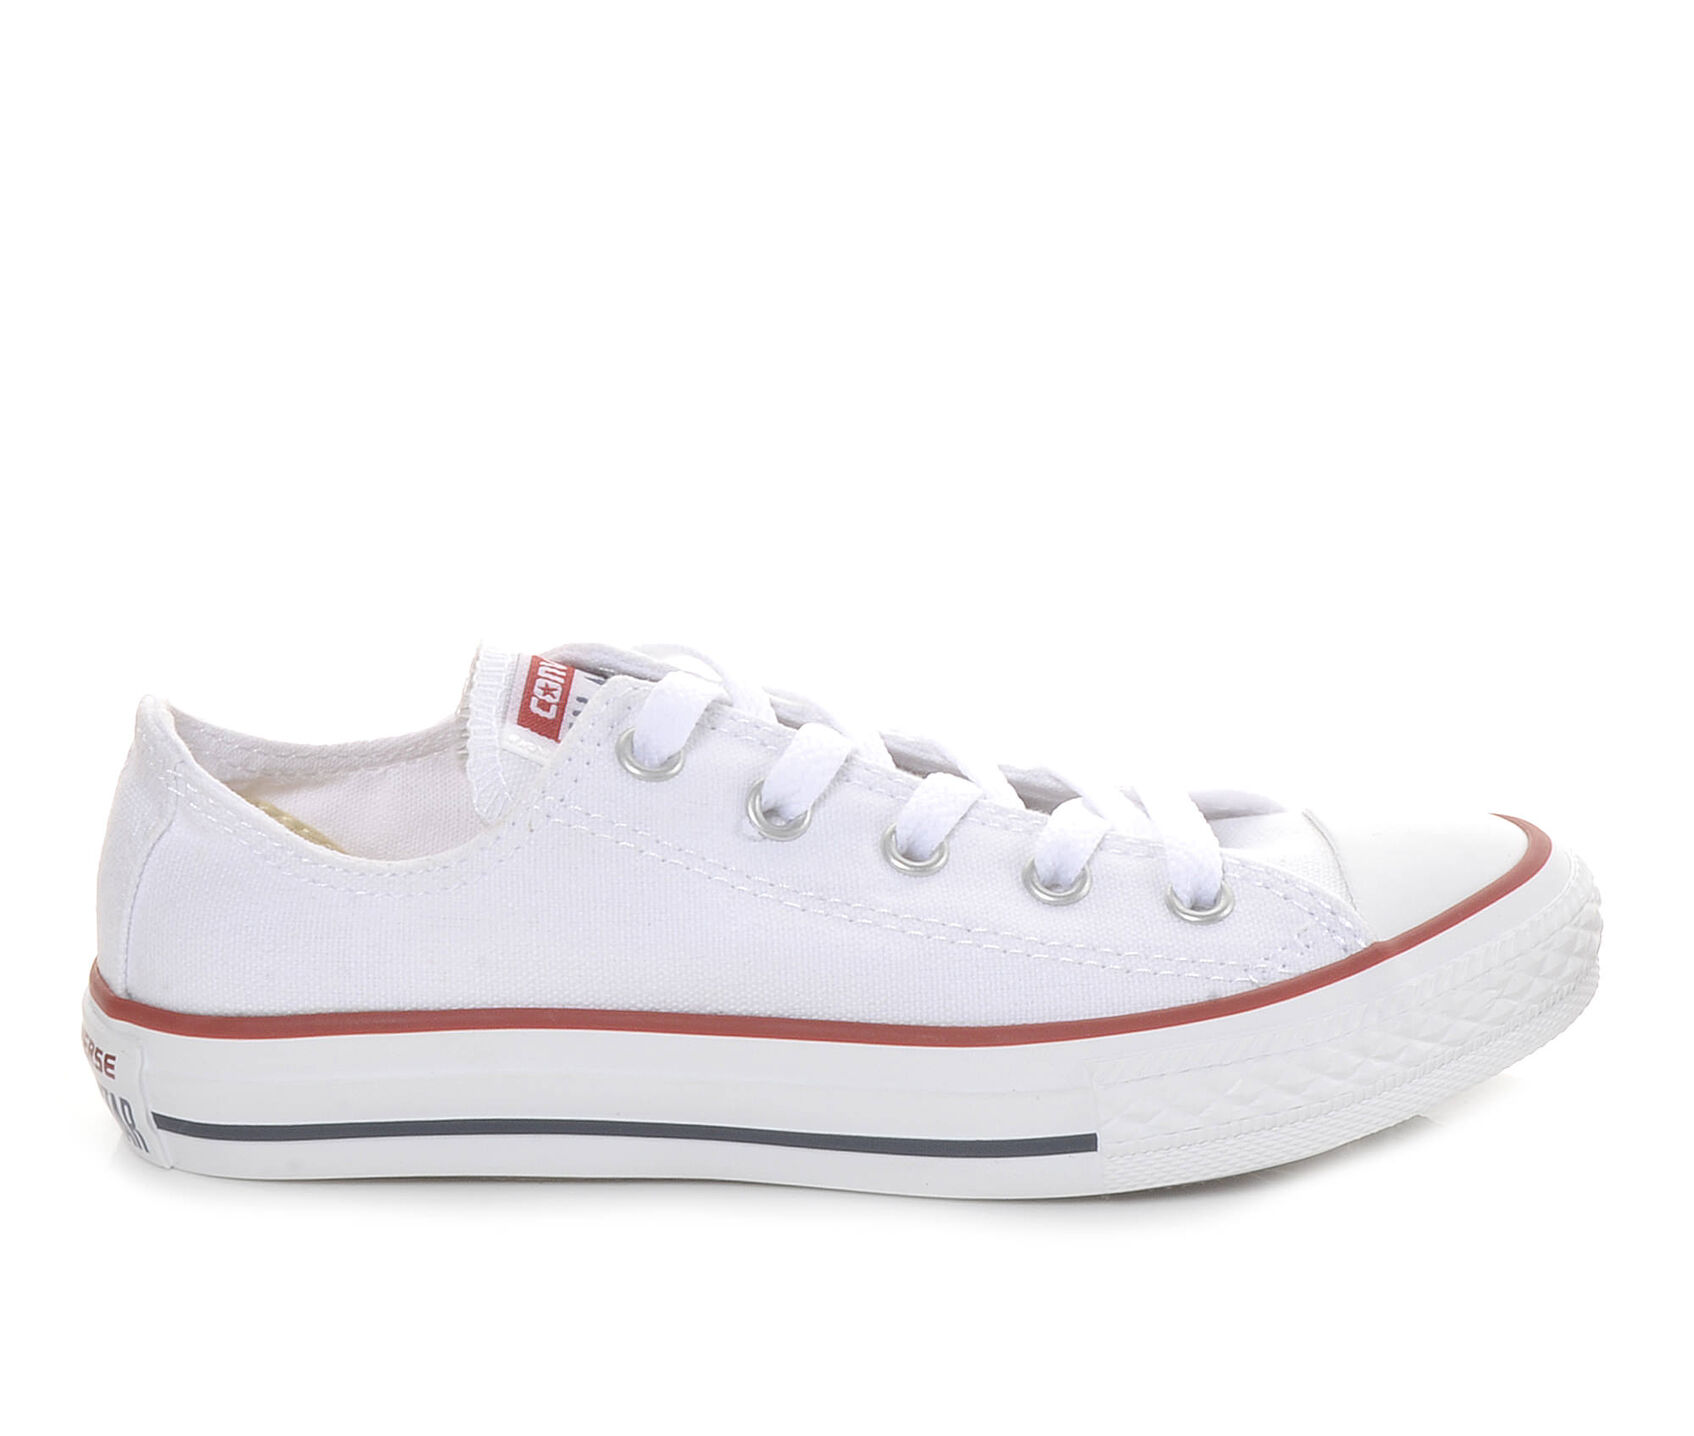 ee0944385c6 ... Converse Little Kid Optic White Ox Sneakers. Previous